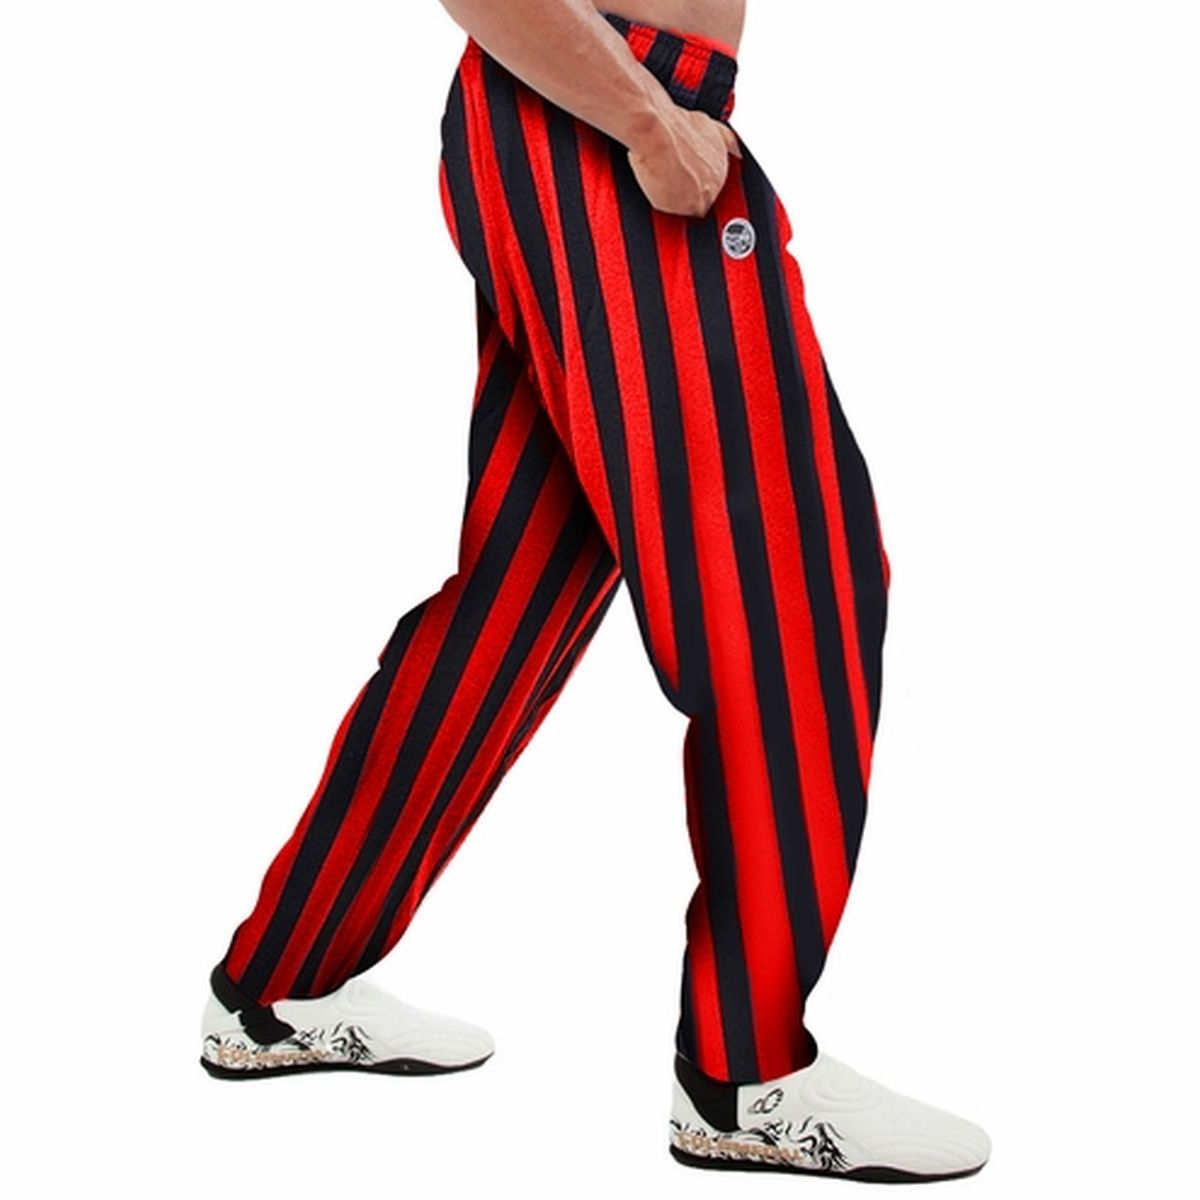 S Red Striped Gym Clothes